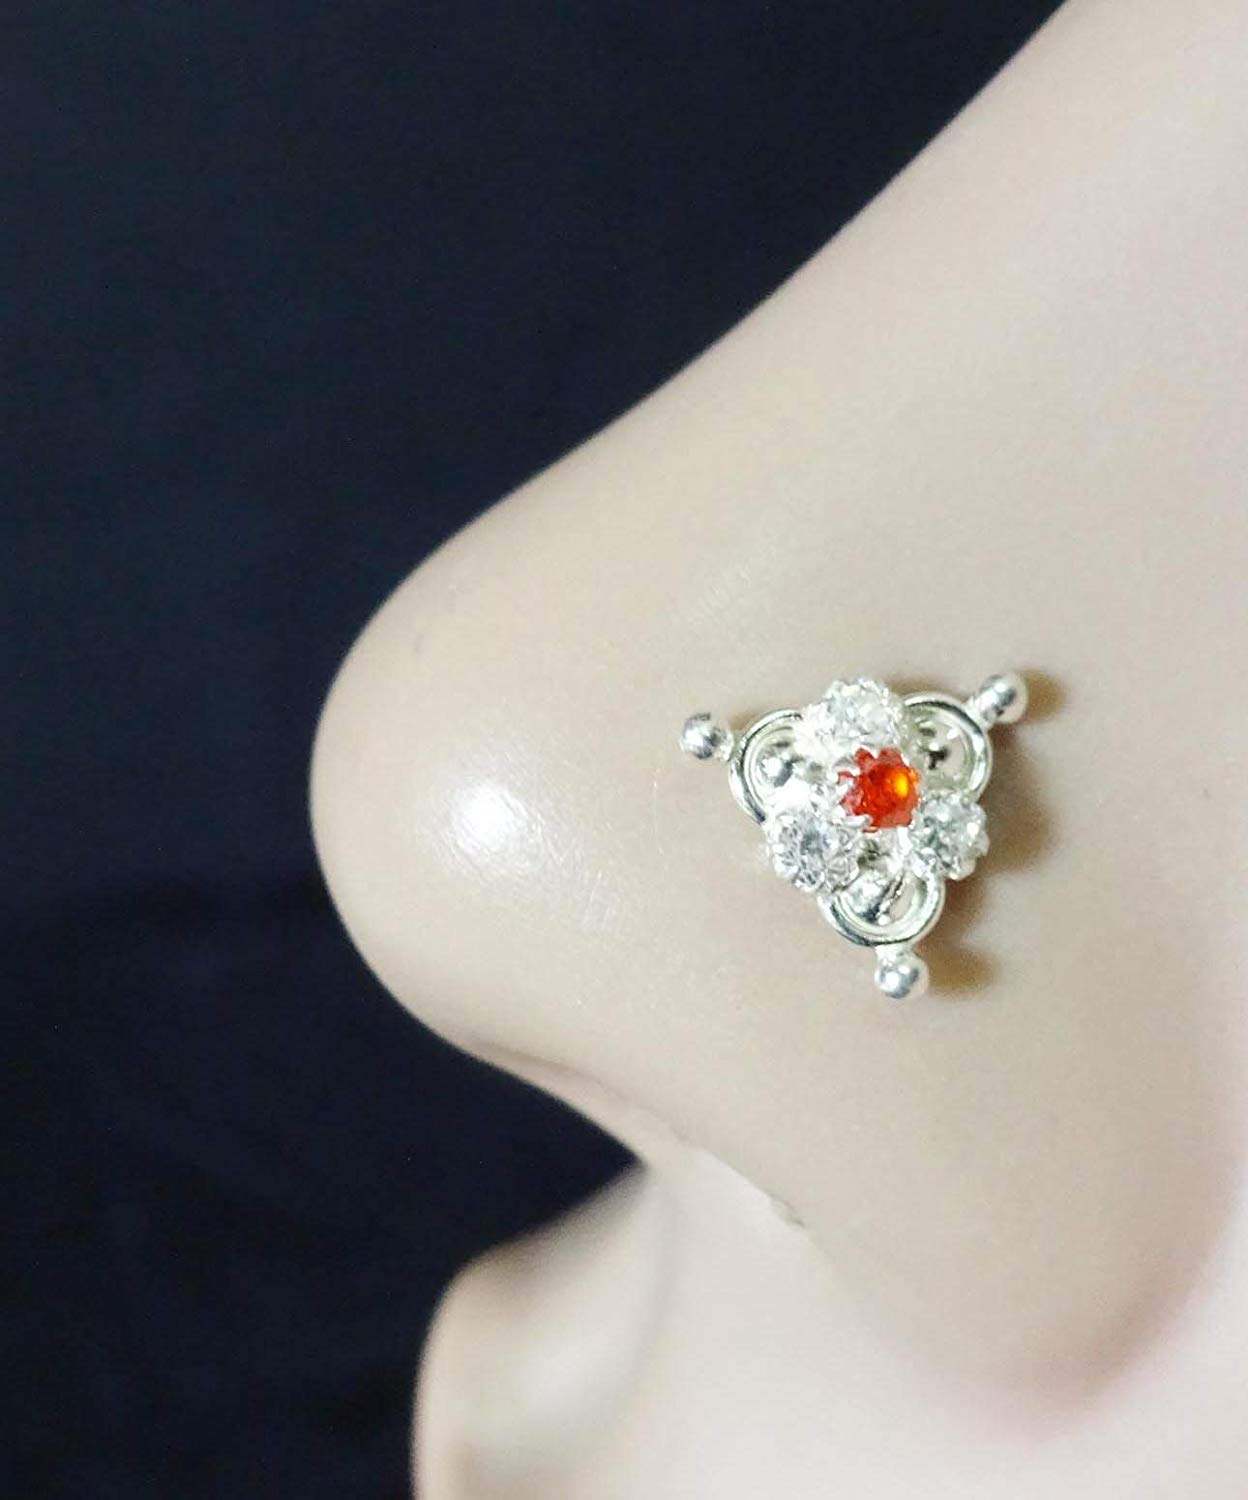 Silver Diamond Piercing,Orange Stone Nose Stud,Silver Nose Cuff,Monroe Nose Ring,Tiny Gold Piercing,Wedding Nose Screw,CZ Clear Nose Stud,Crock Screw Nose Stud,Indian Nose Stud(TEJ747)